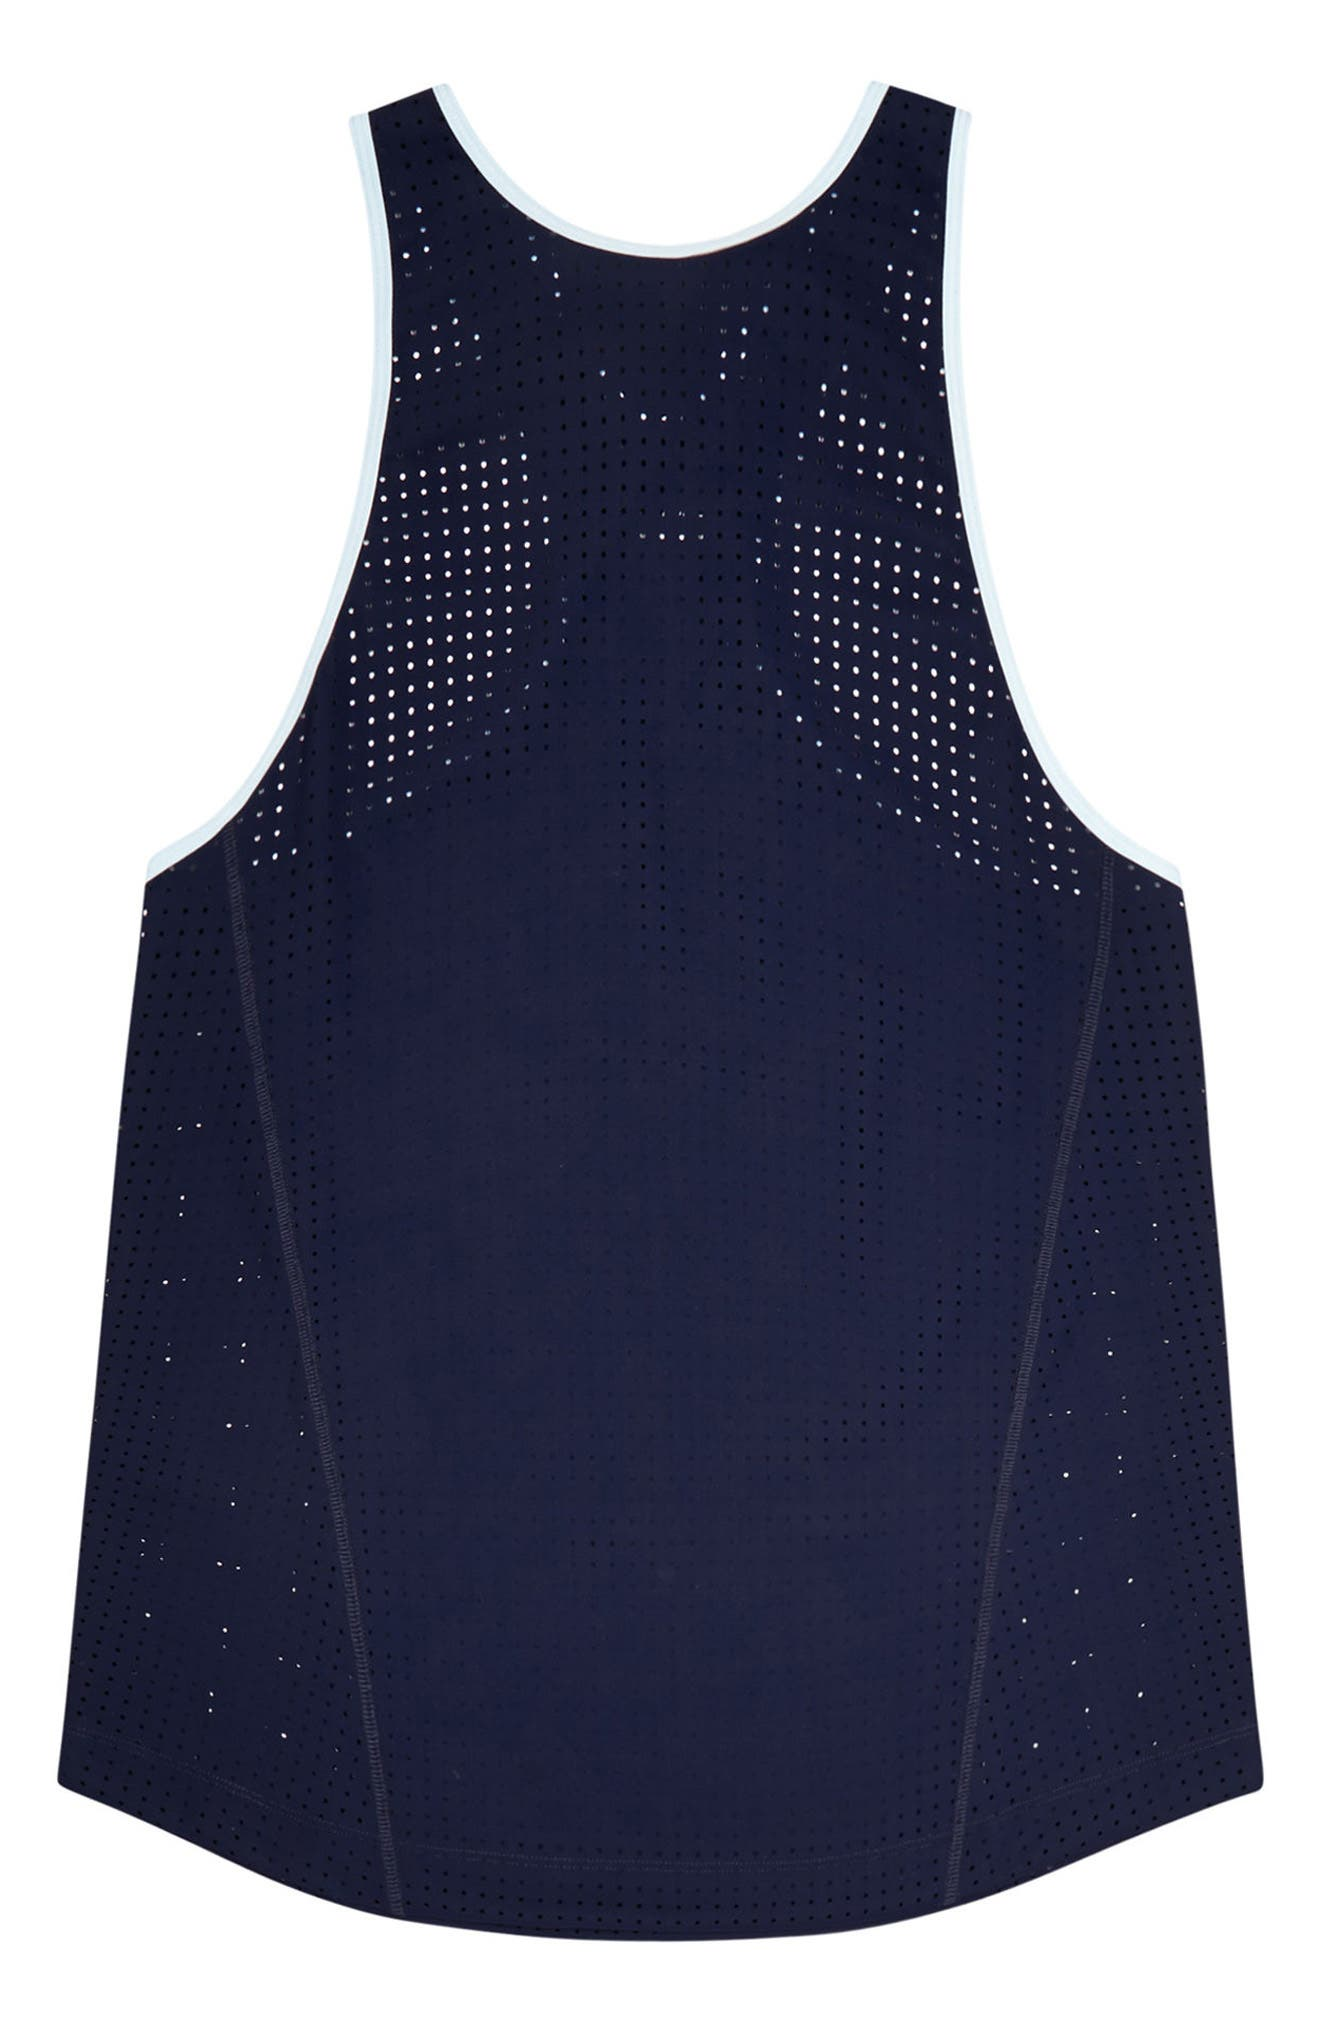 Sebastian Lasercut Tank,                             Alternate thumbnail 4, color,                             400